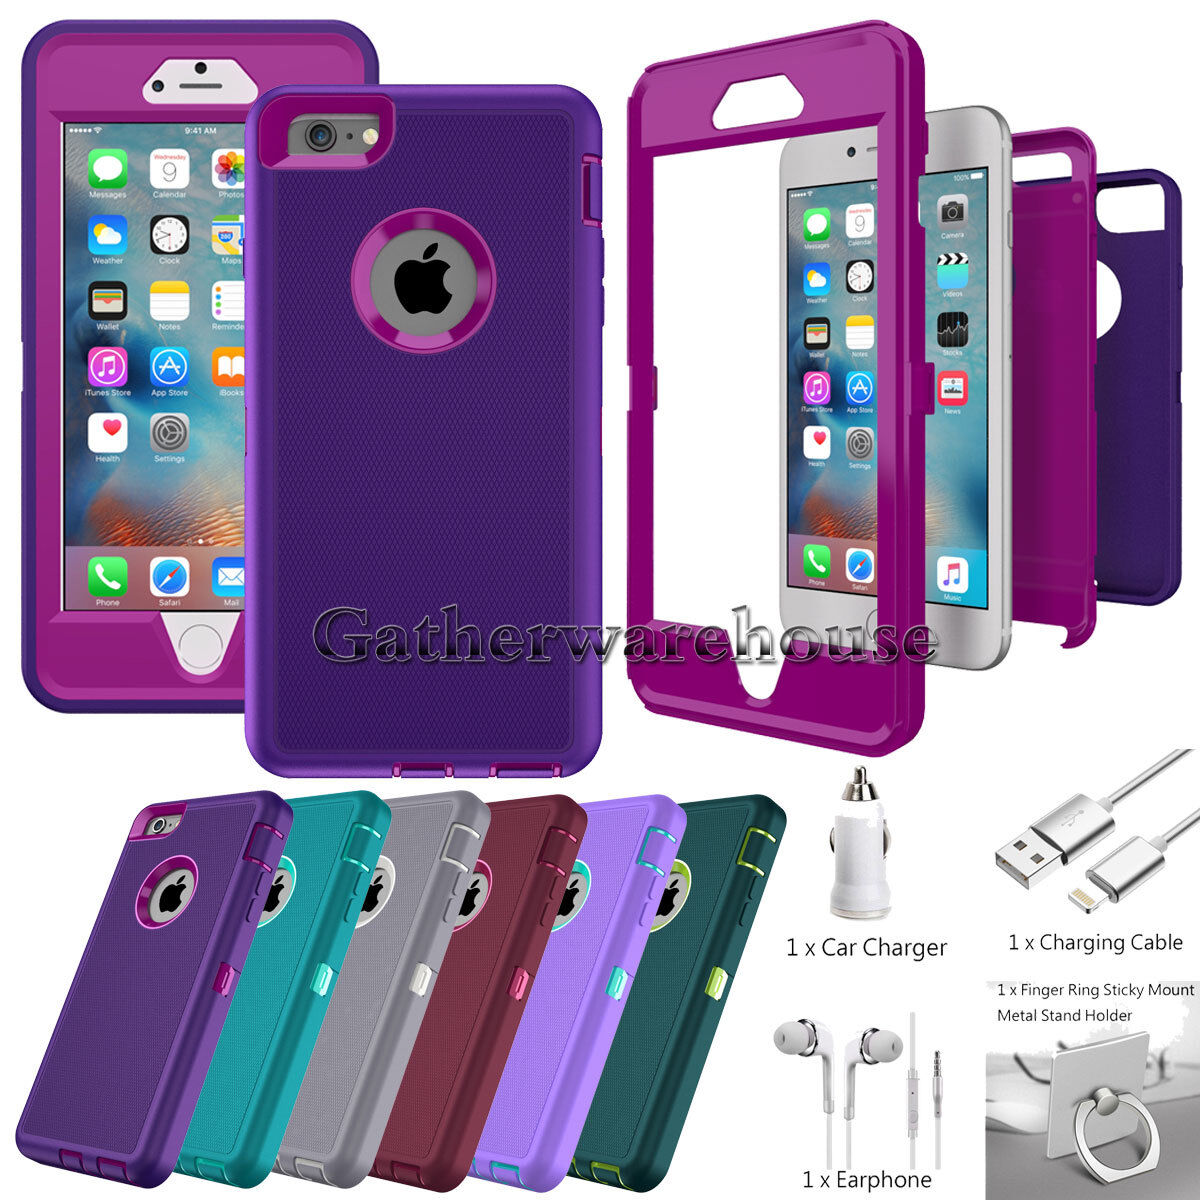 Protective Hybrid Shockproof Hard Case Cover For Apple iPhone 6 6s Plus 7 7 Plus